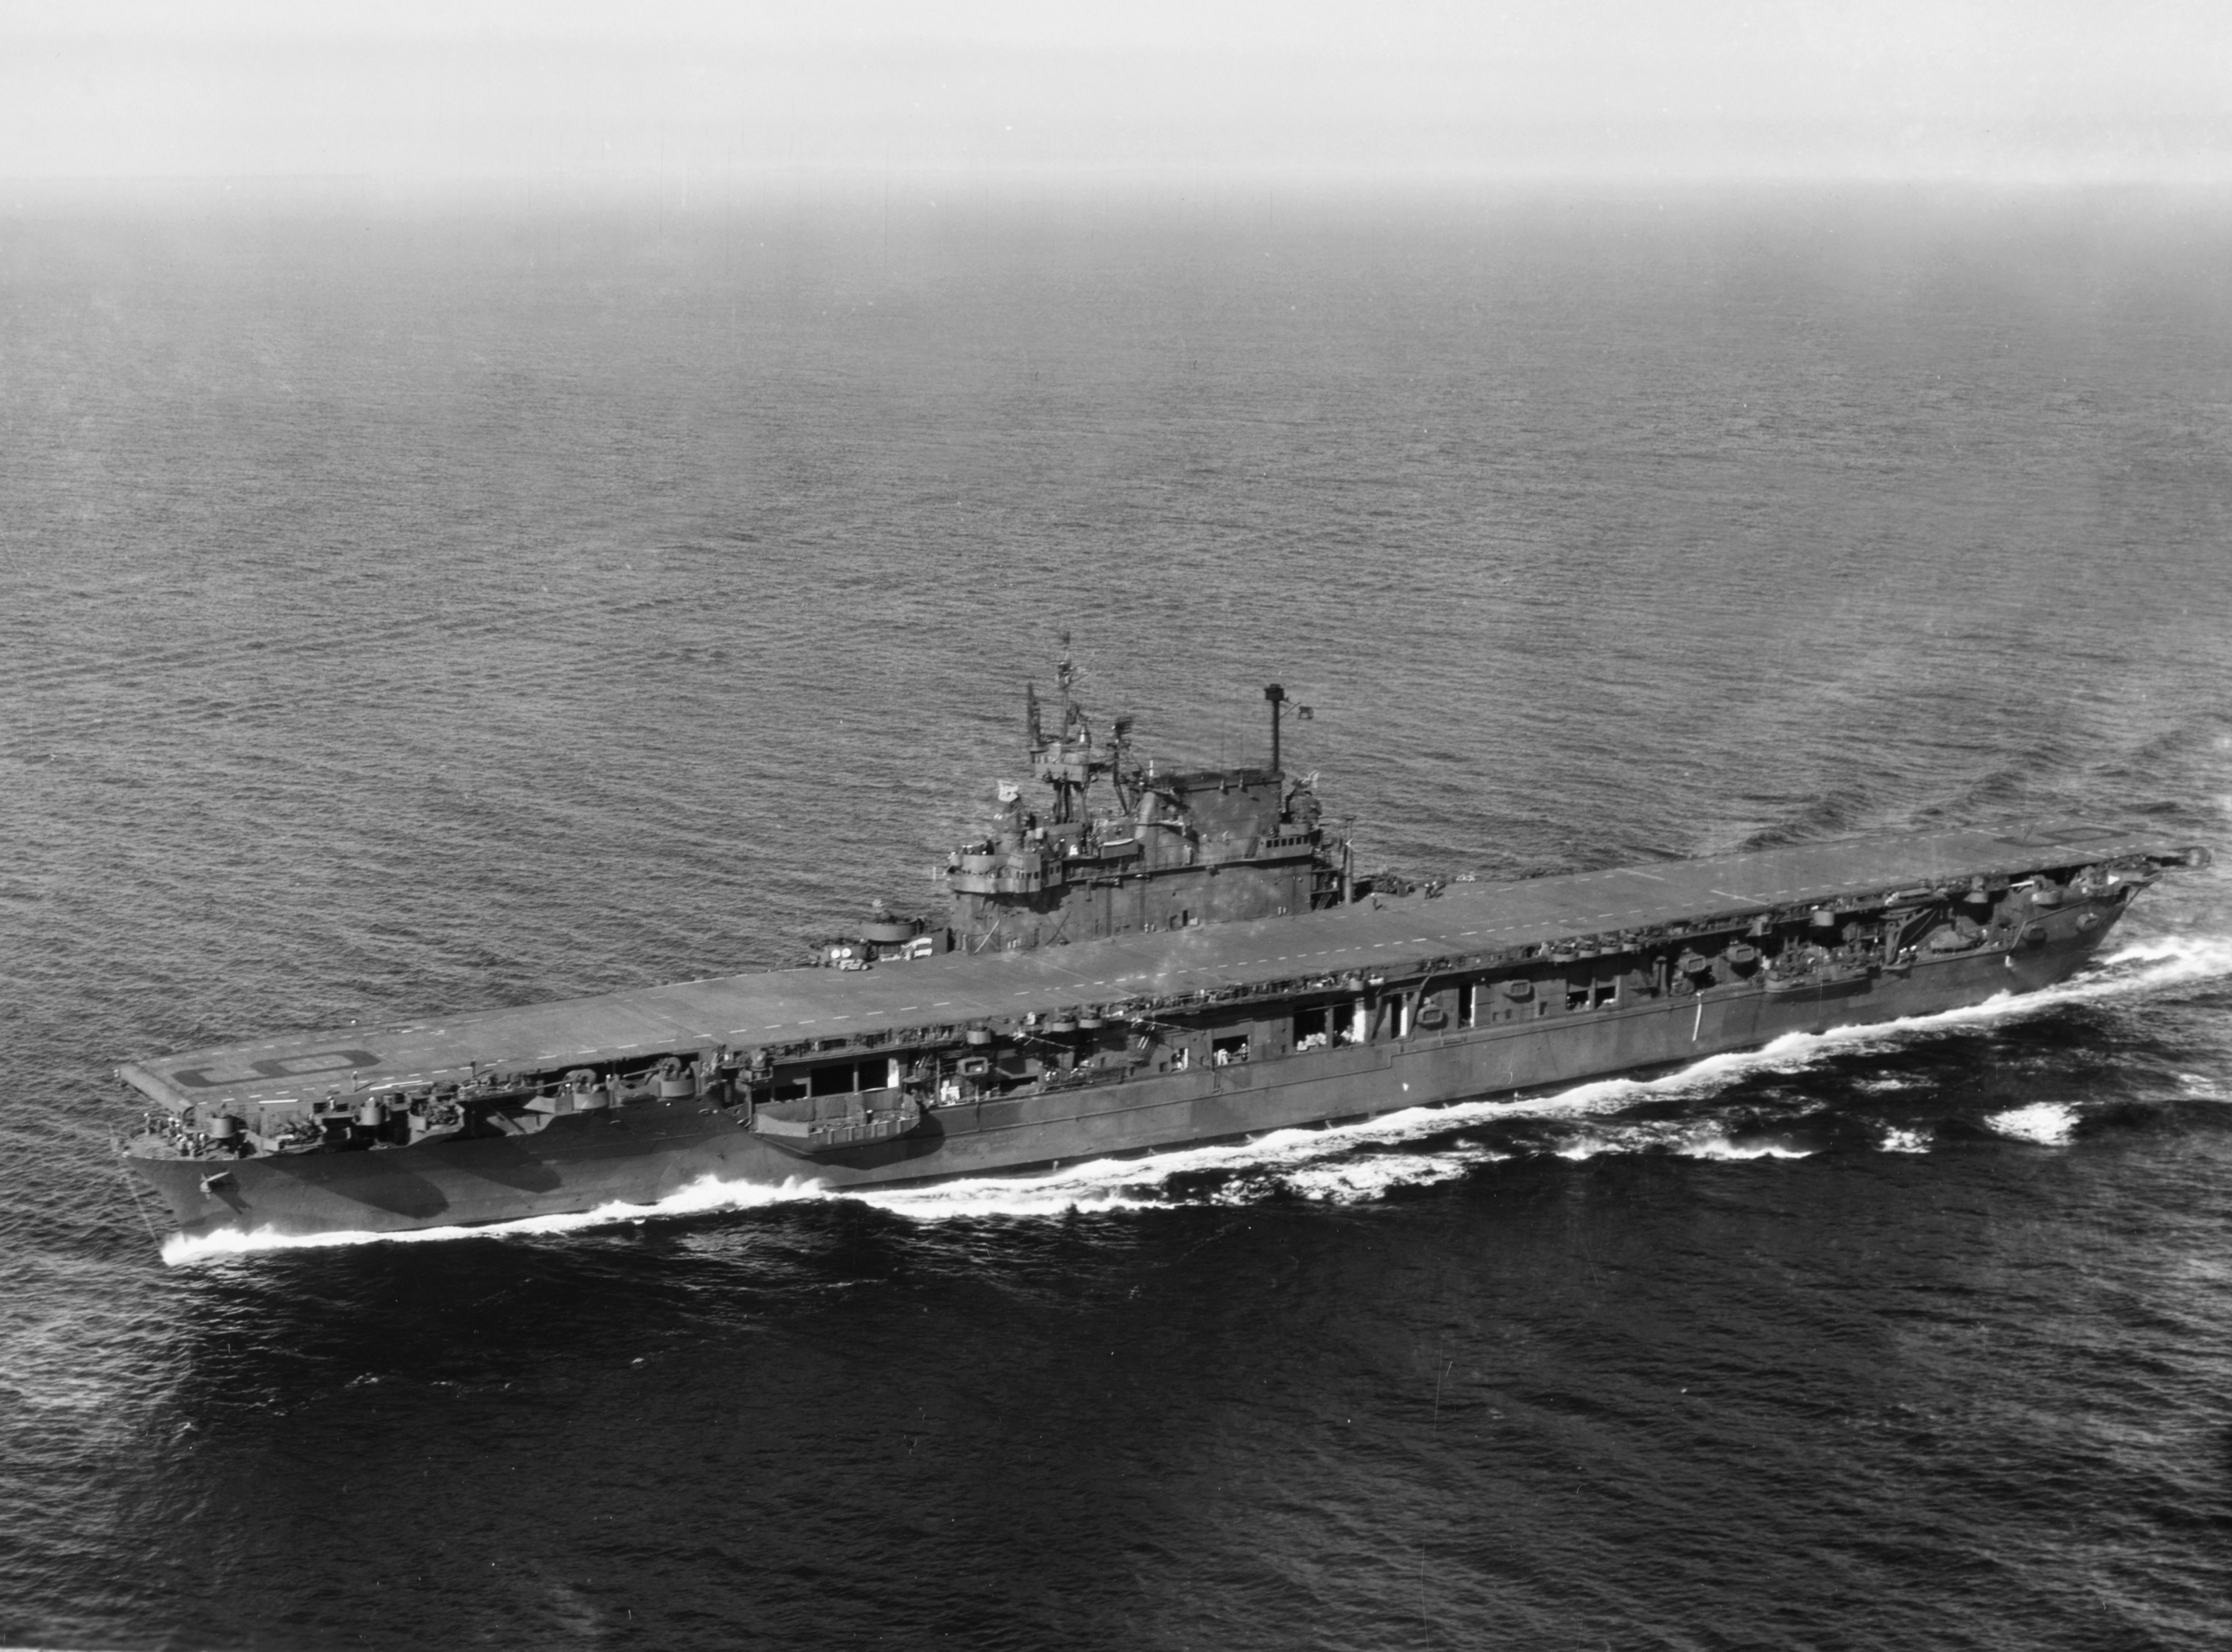 USS_Enterprise_(CV-6)_in_Puget_Sound,_September_1945.jpg